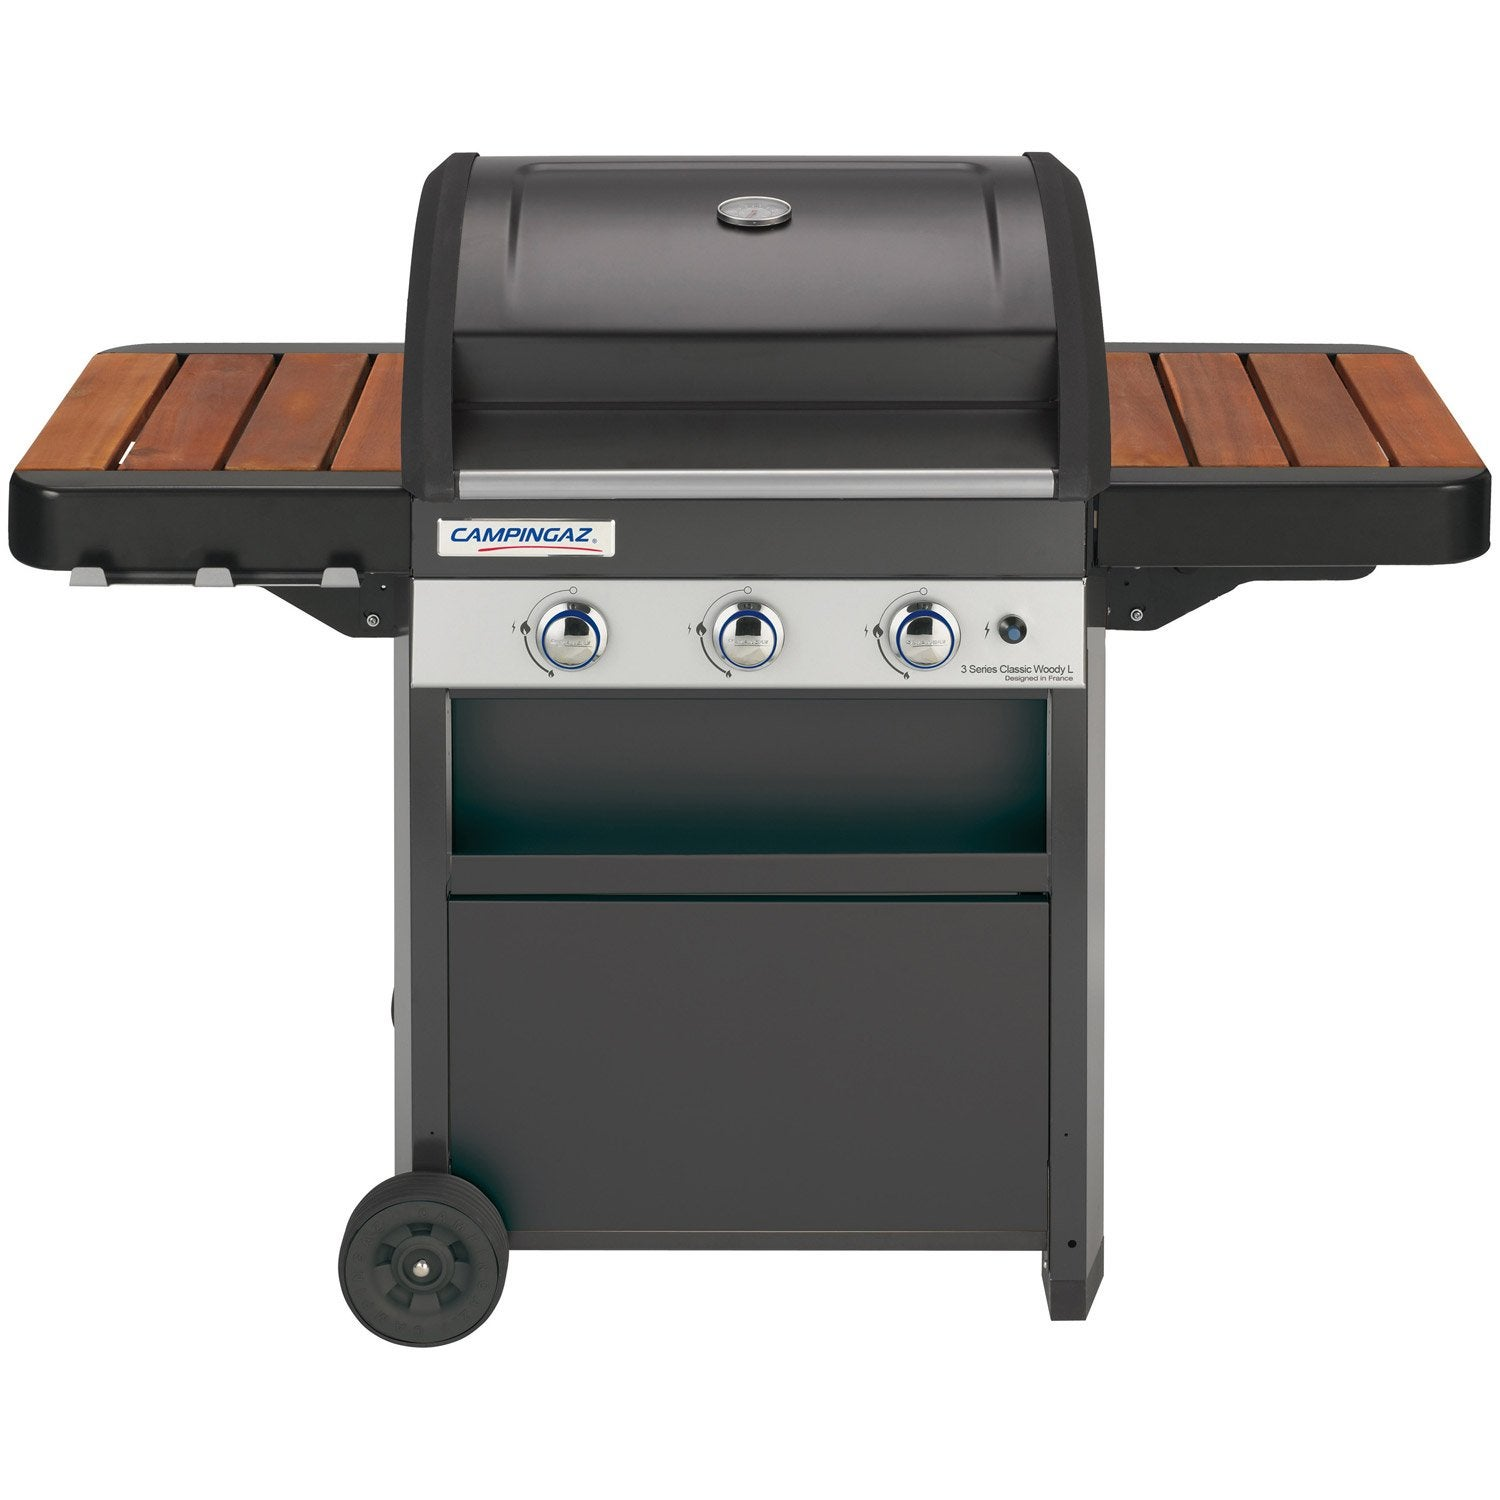 Barbecue au gaz campingaz 3 series classic leroy merlin for Barbecue a gaz leroy merlin